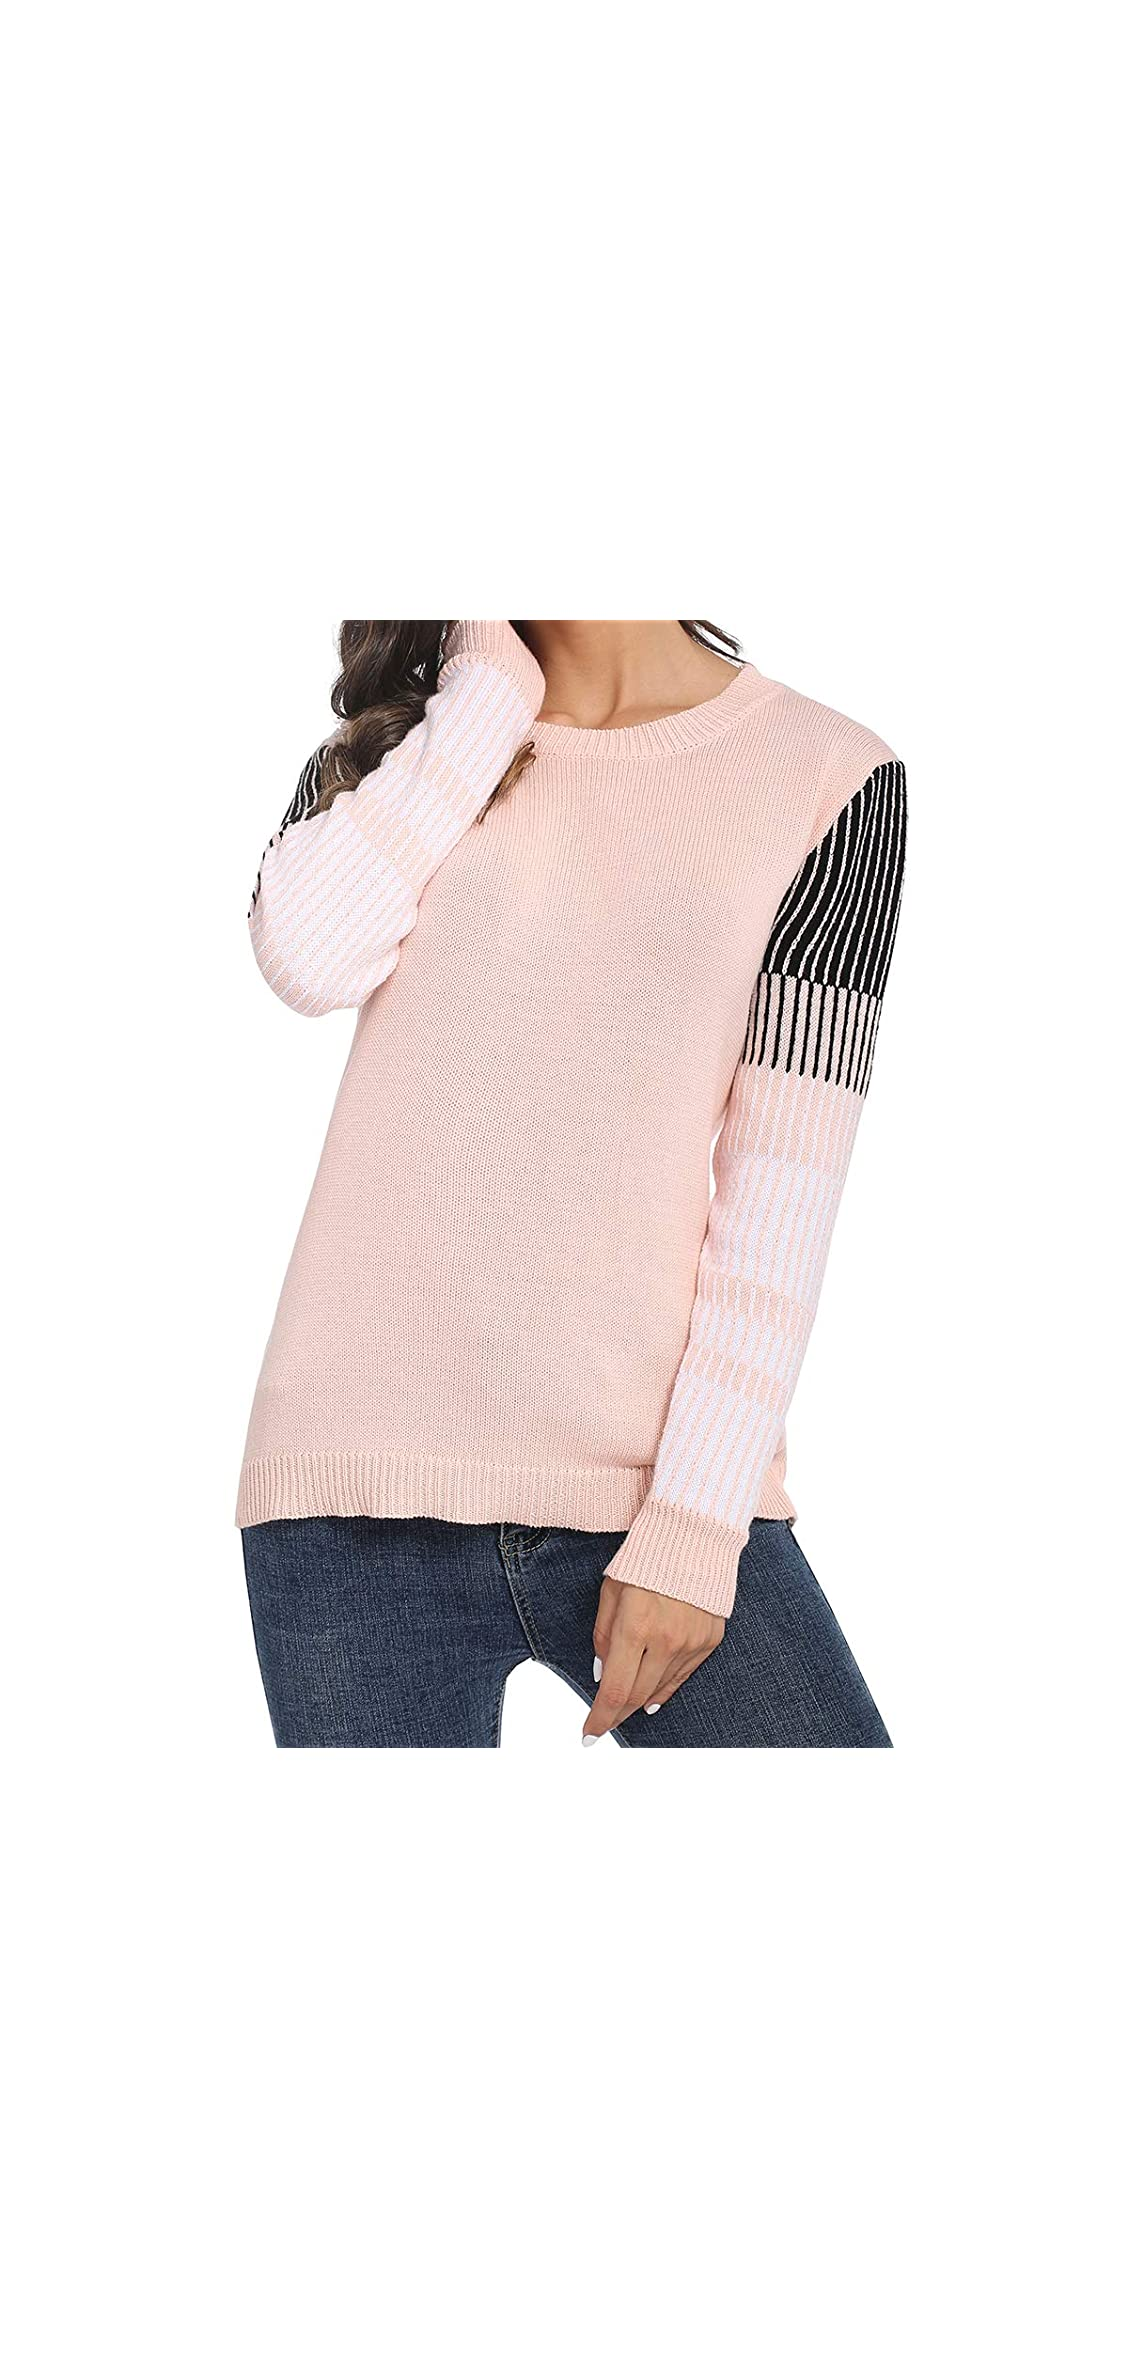 Crew-neck Pullover Sweater For Women Color Block Top